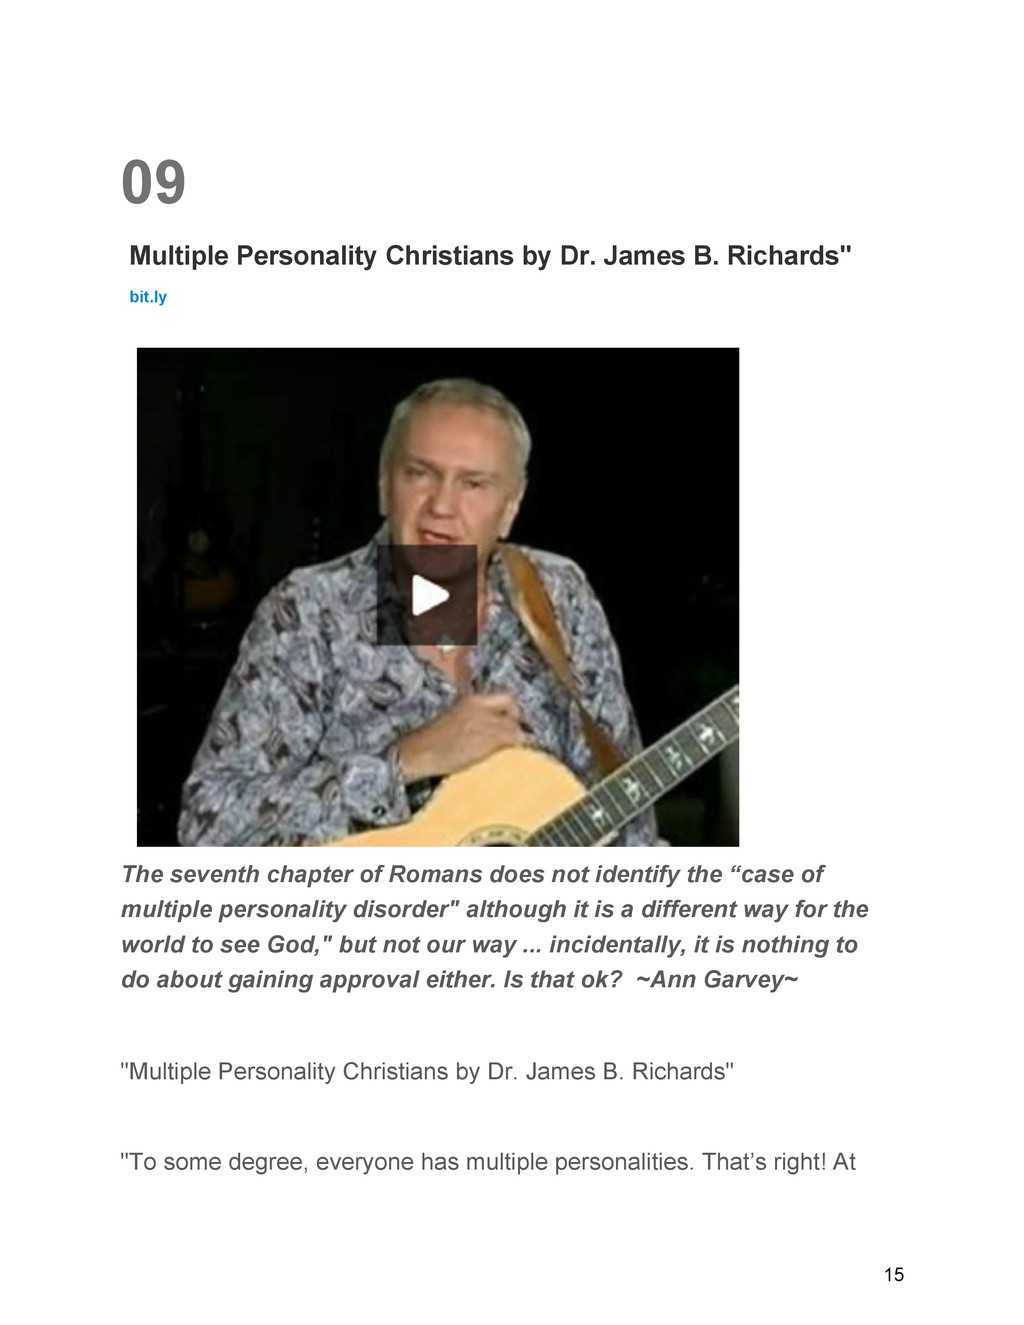 09 Multiple Personality Christians by Dr. James...